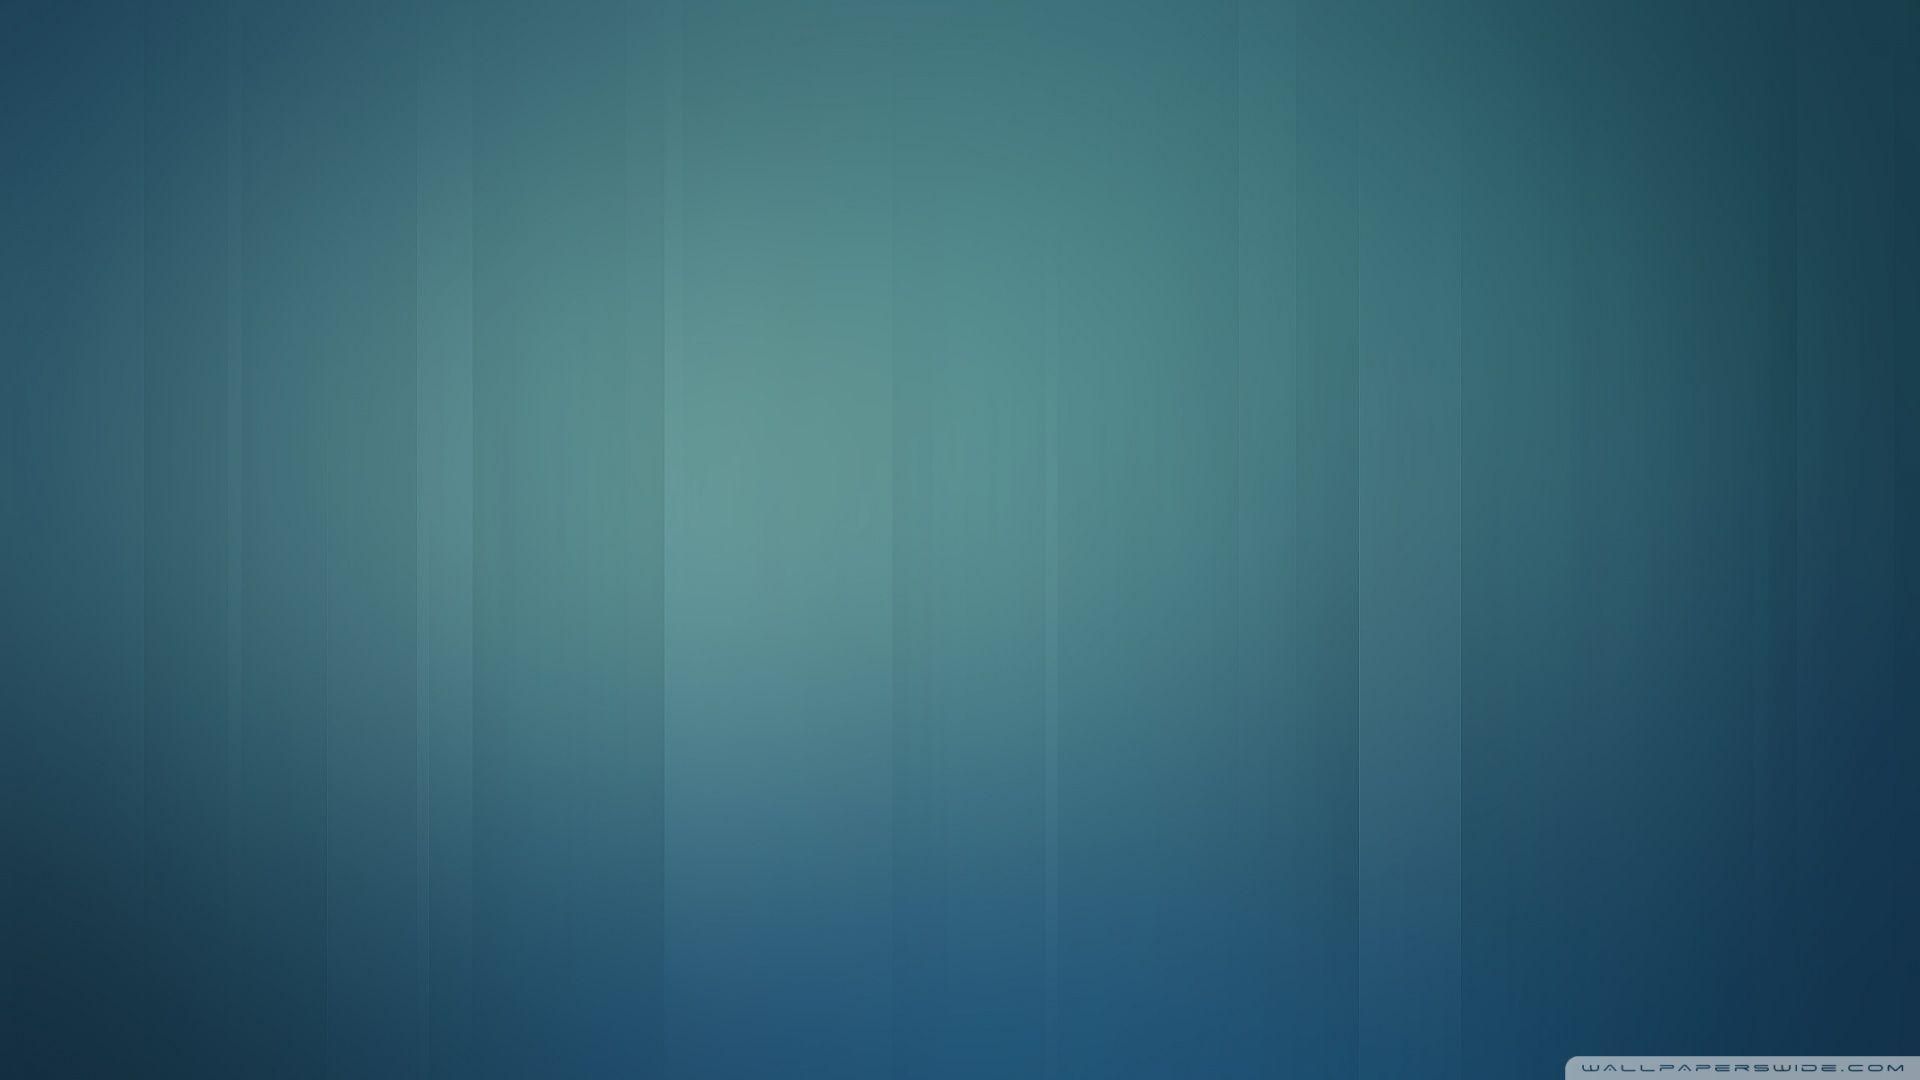 Simple Dark Blue Wallpapers Background 1 HD Wallpapers | Hdimges.